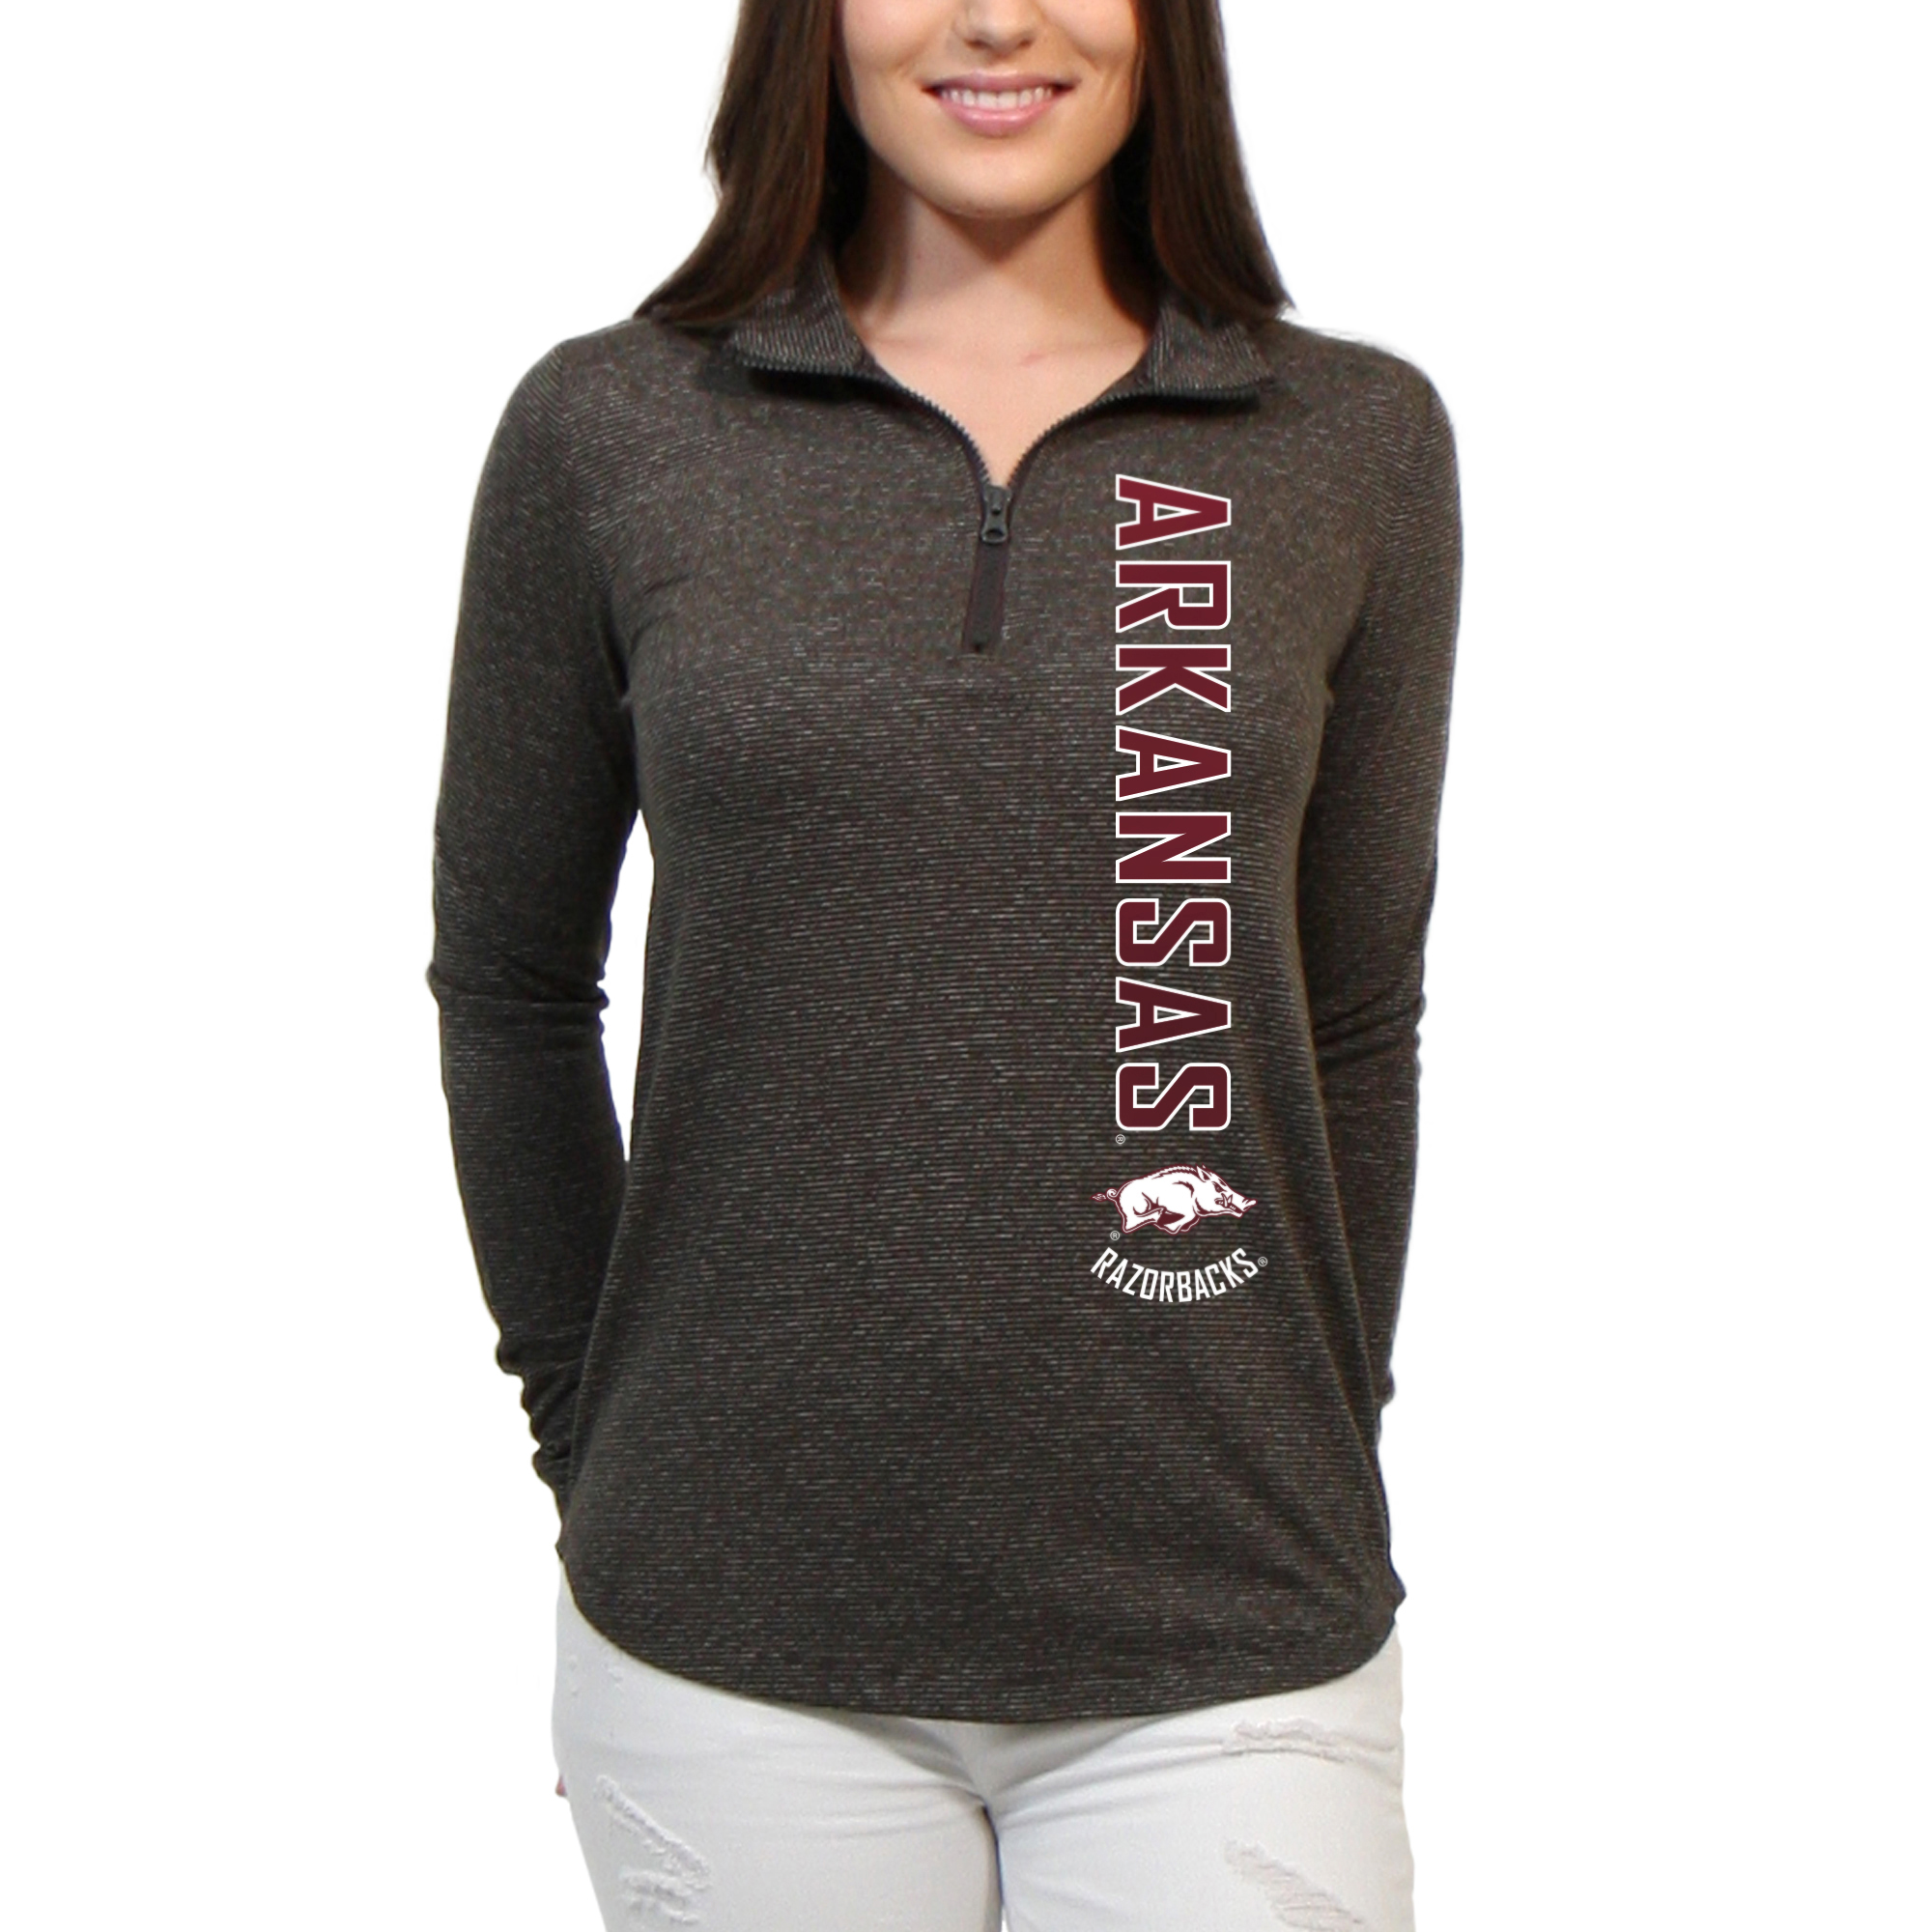 Arkansas Razorbacks Cascade Text Women's/Juniors Team Long Sleeve Half Zip Shirt